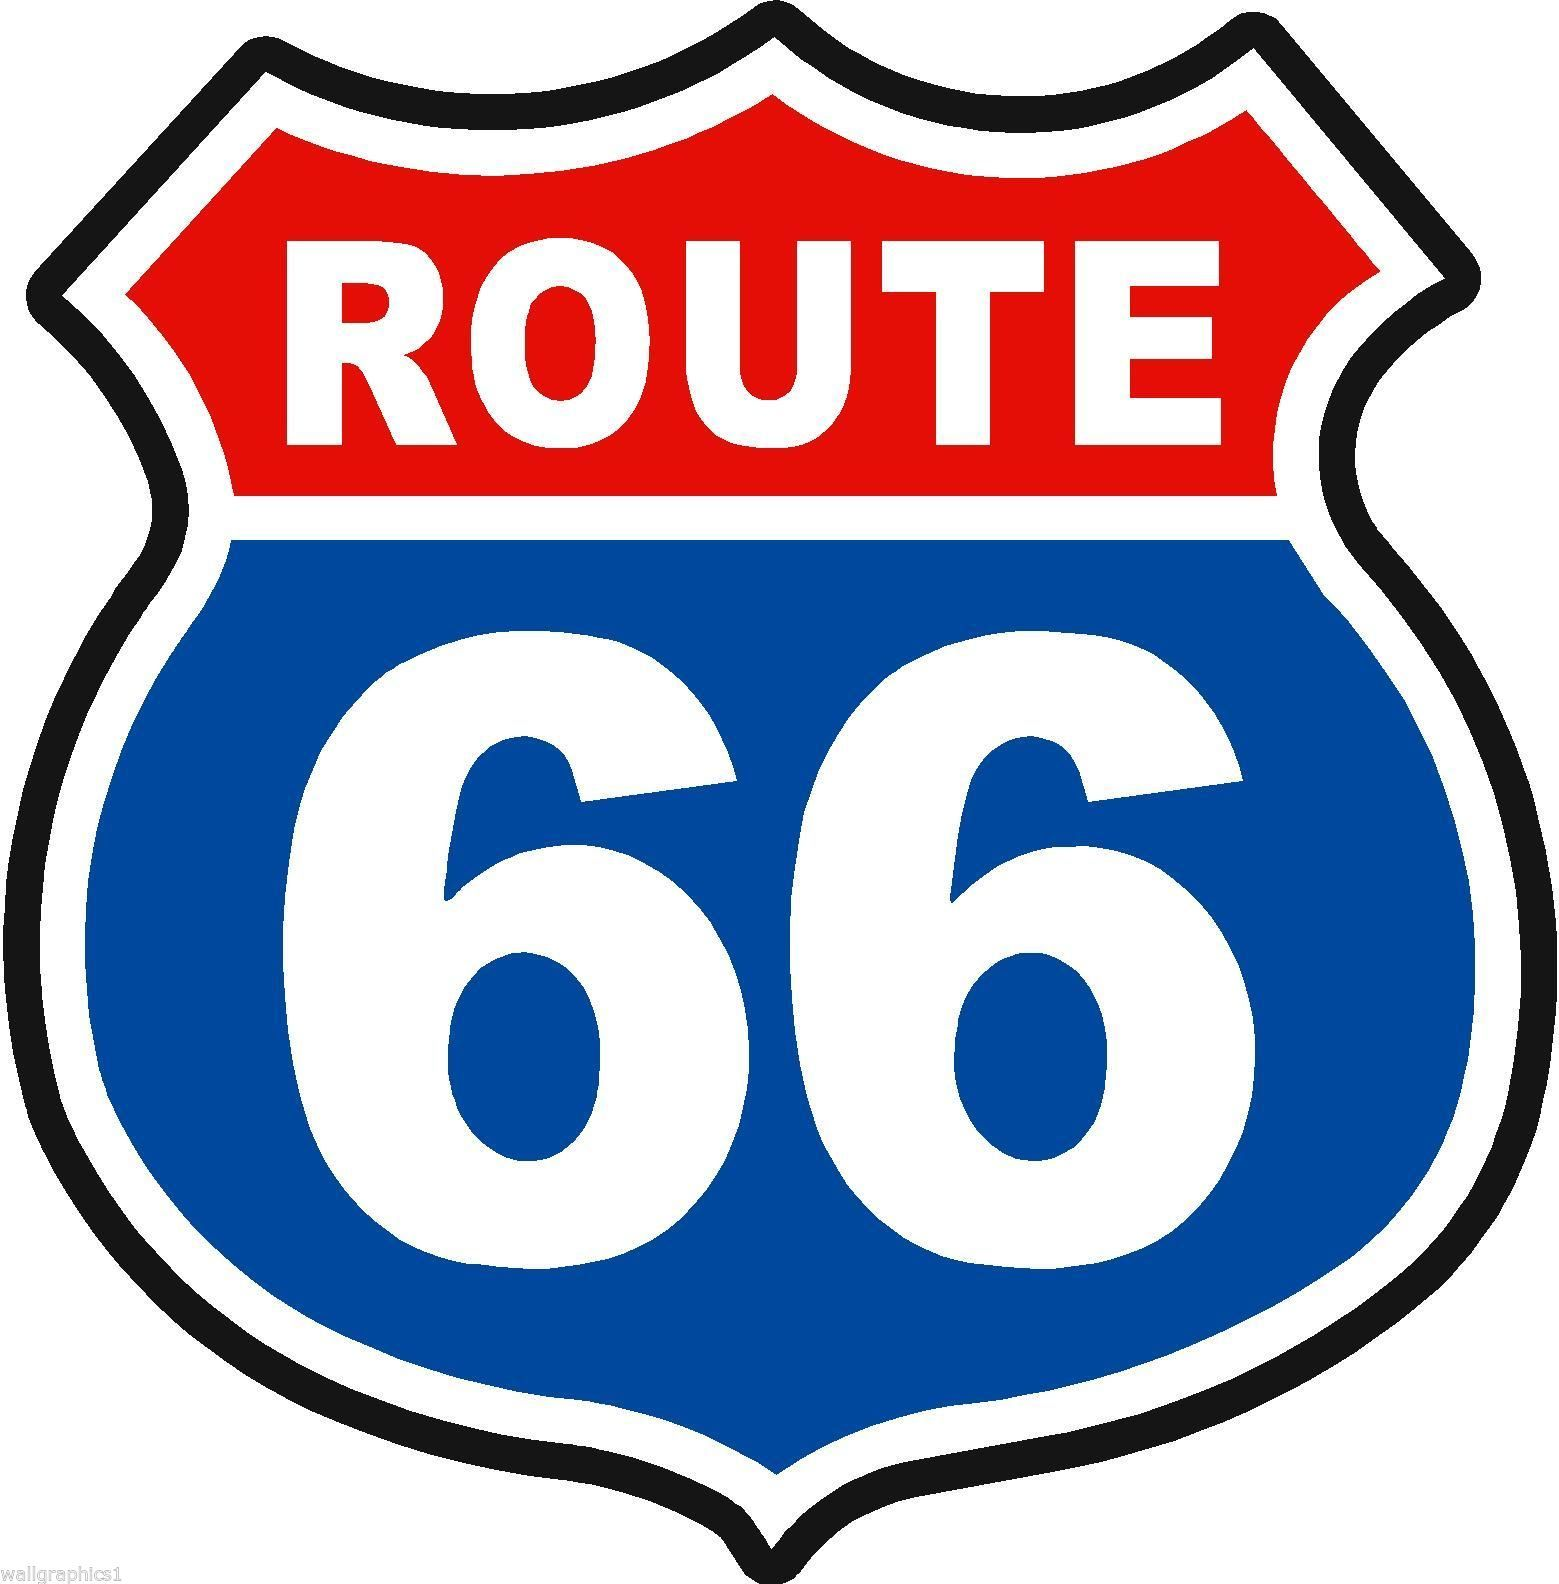 Route 66 Wall Decal Man Cave Bar Room Graphics Garage